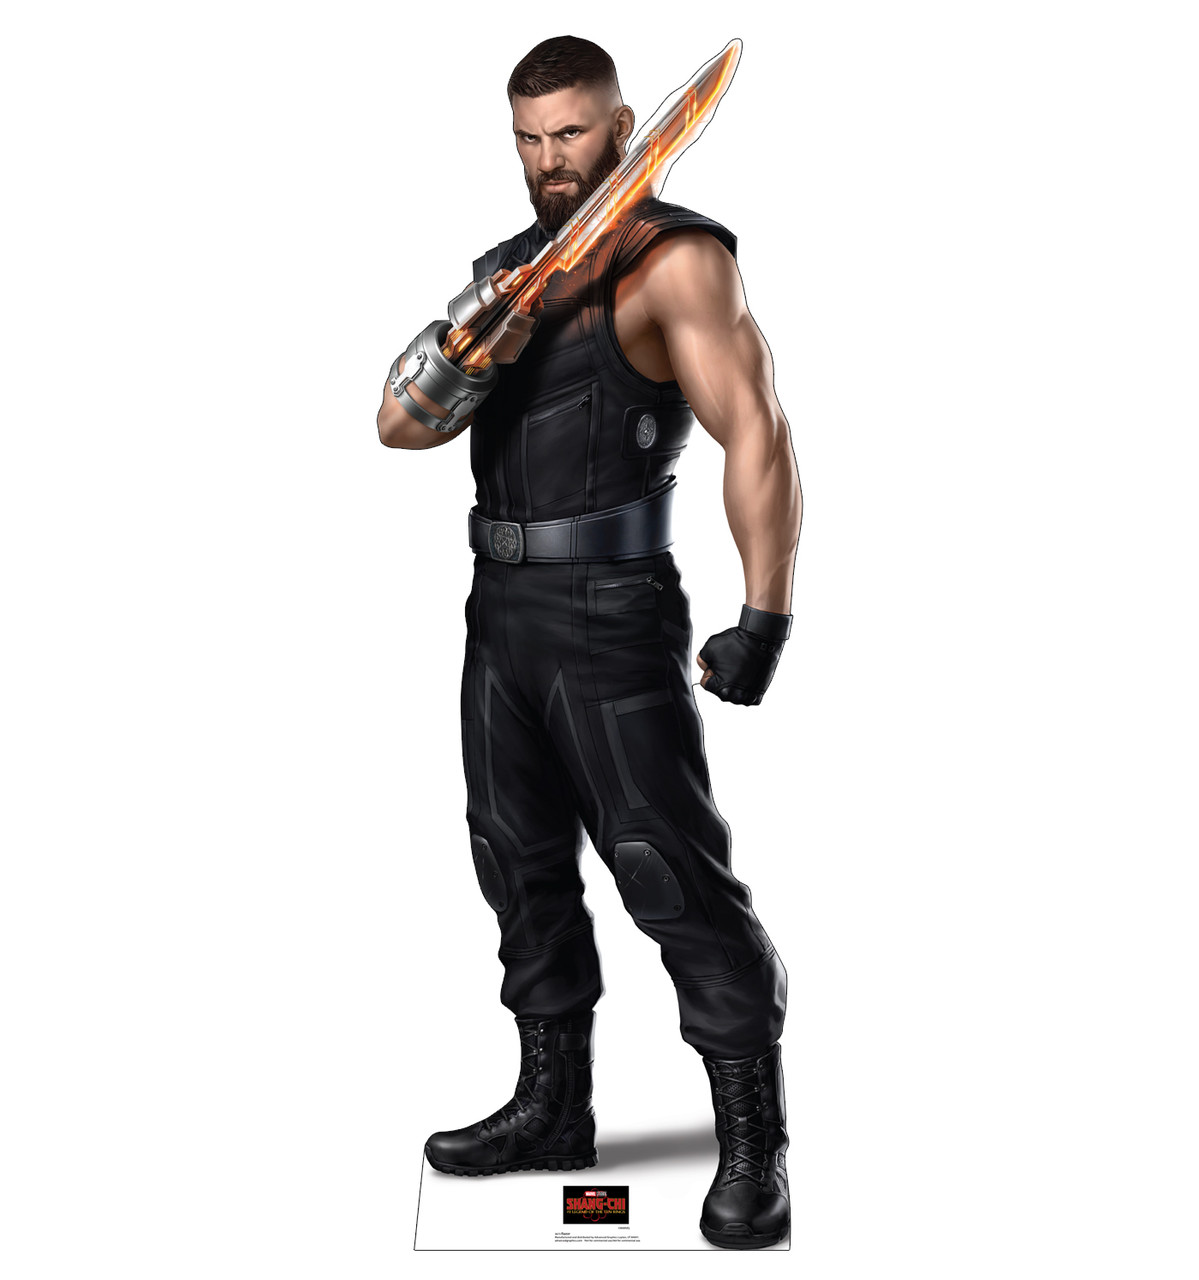 Life-size cardboard standee of Razor from Shang-Chi and the Legends of the Ten Rings from Marvel Studios.